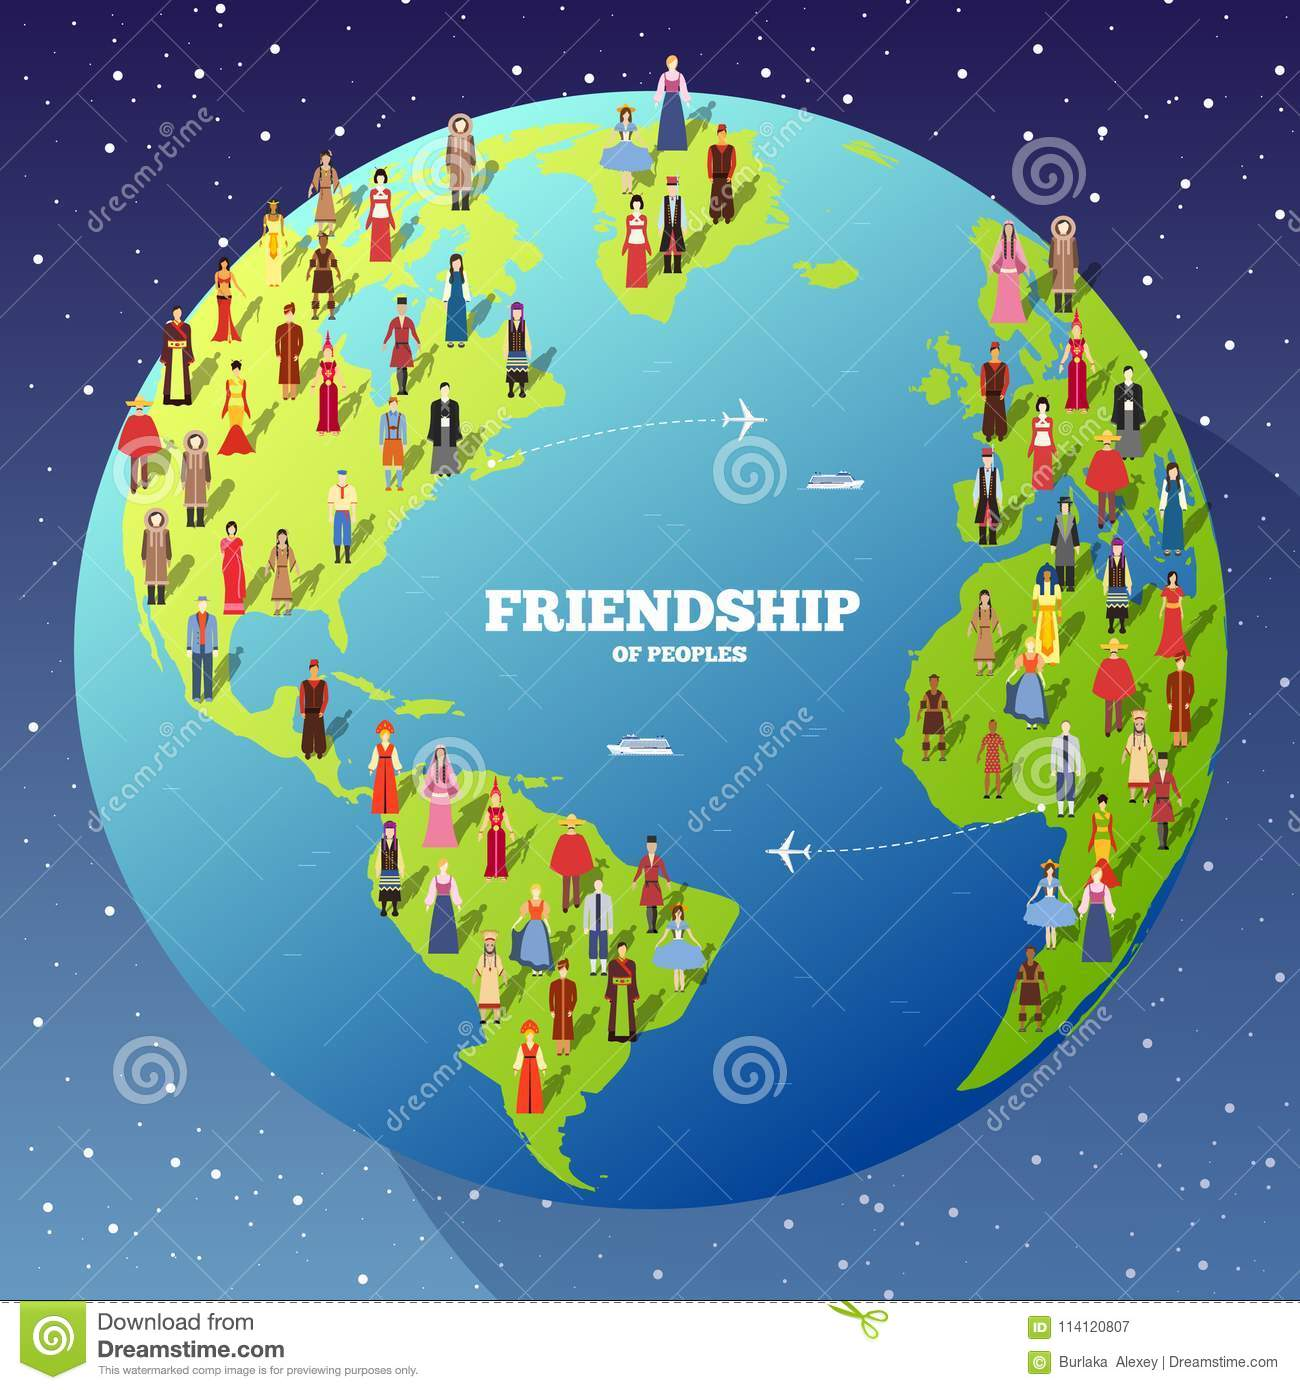 People friendship international day of the world indigenous peoples people friendship international day of the world indigenous peoples vector flat circle concept illustration concept gumiabroncs Gallery